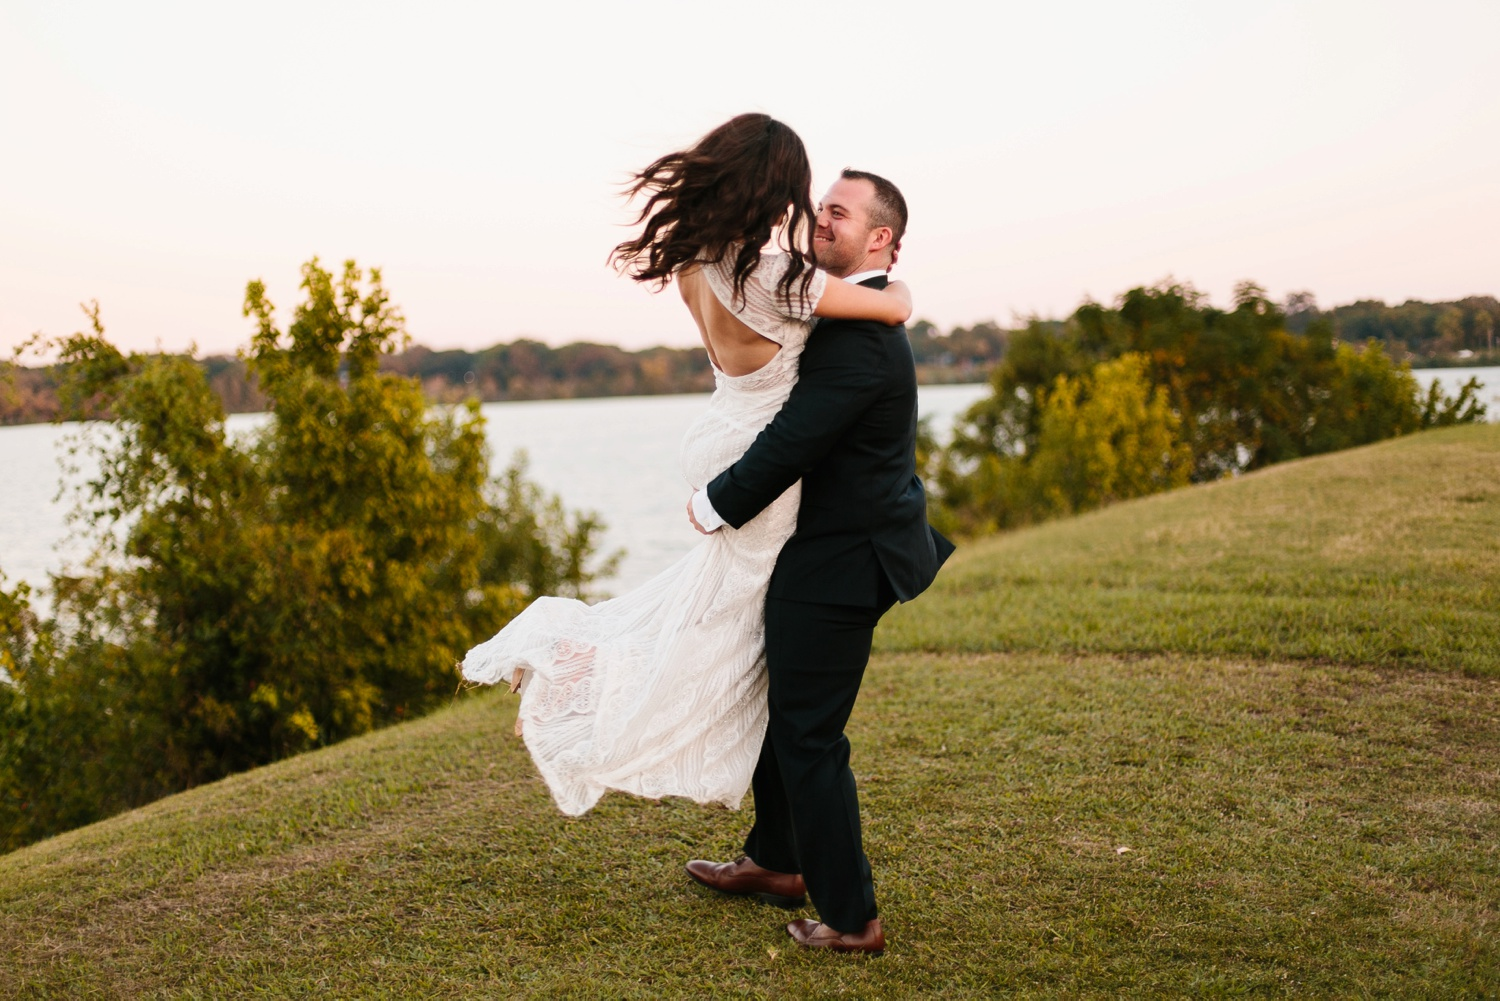 Kadee + Tyler | a raw, emotional wedding at the Filter Building on White Rock Lake in Dallas, TX by North Texas Wedding Photographer, Rachel Meagan Photography 184